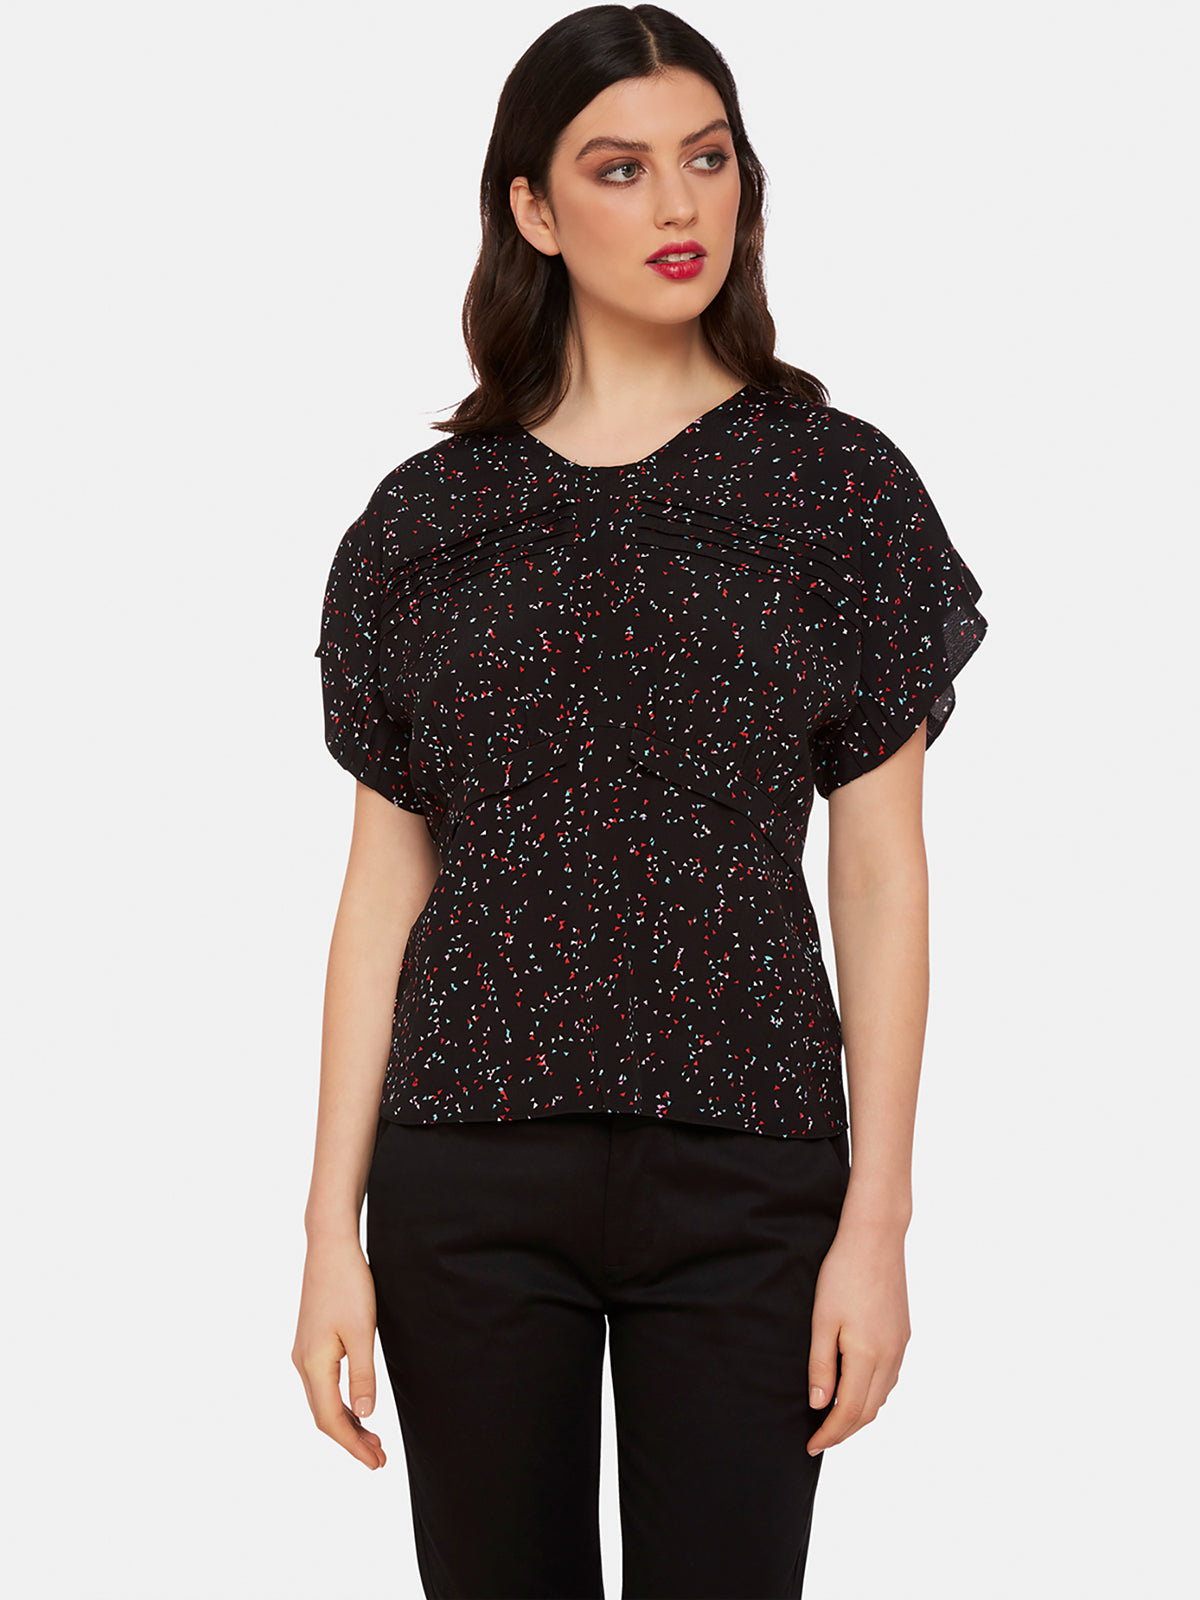 AMY BLACK TRIANGLE PRINT TOP BLACK MULTI